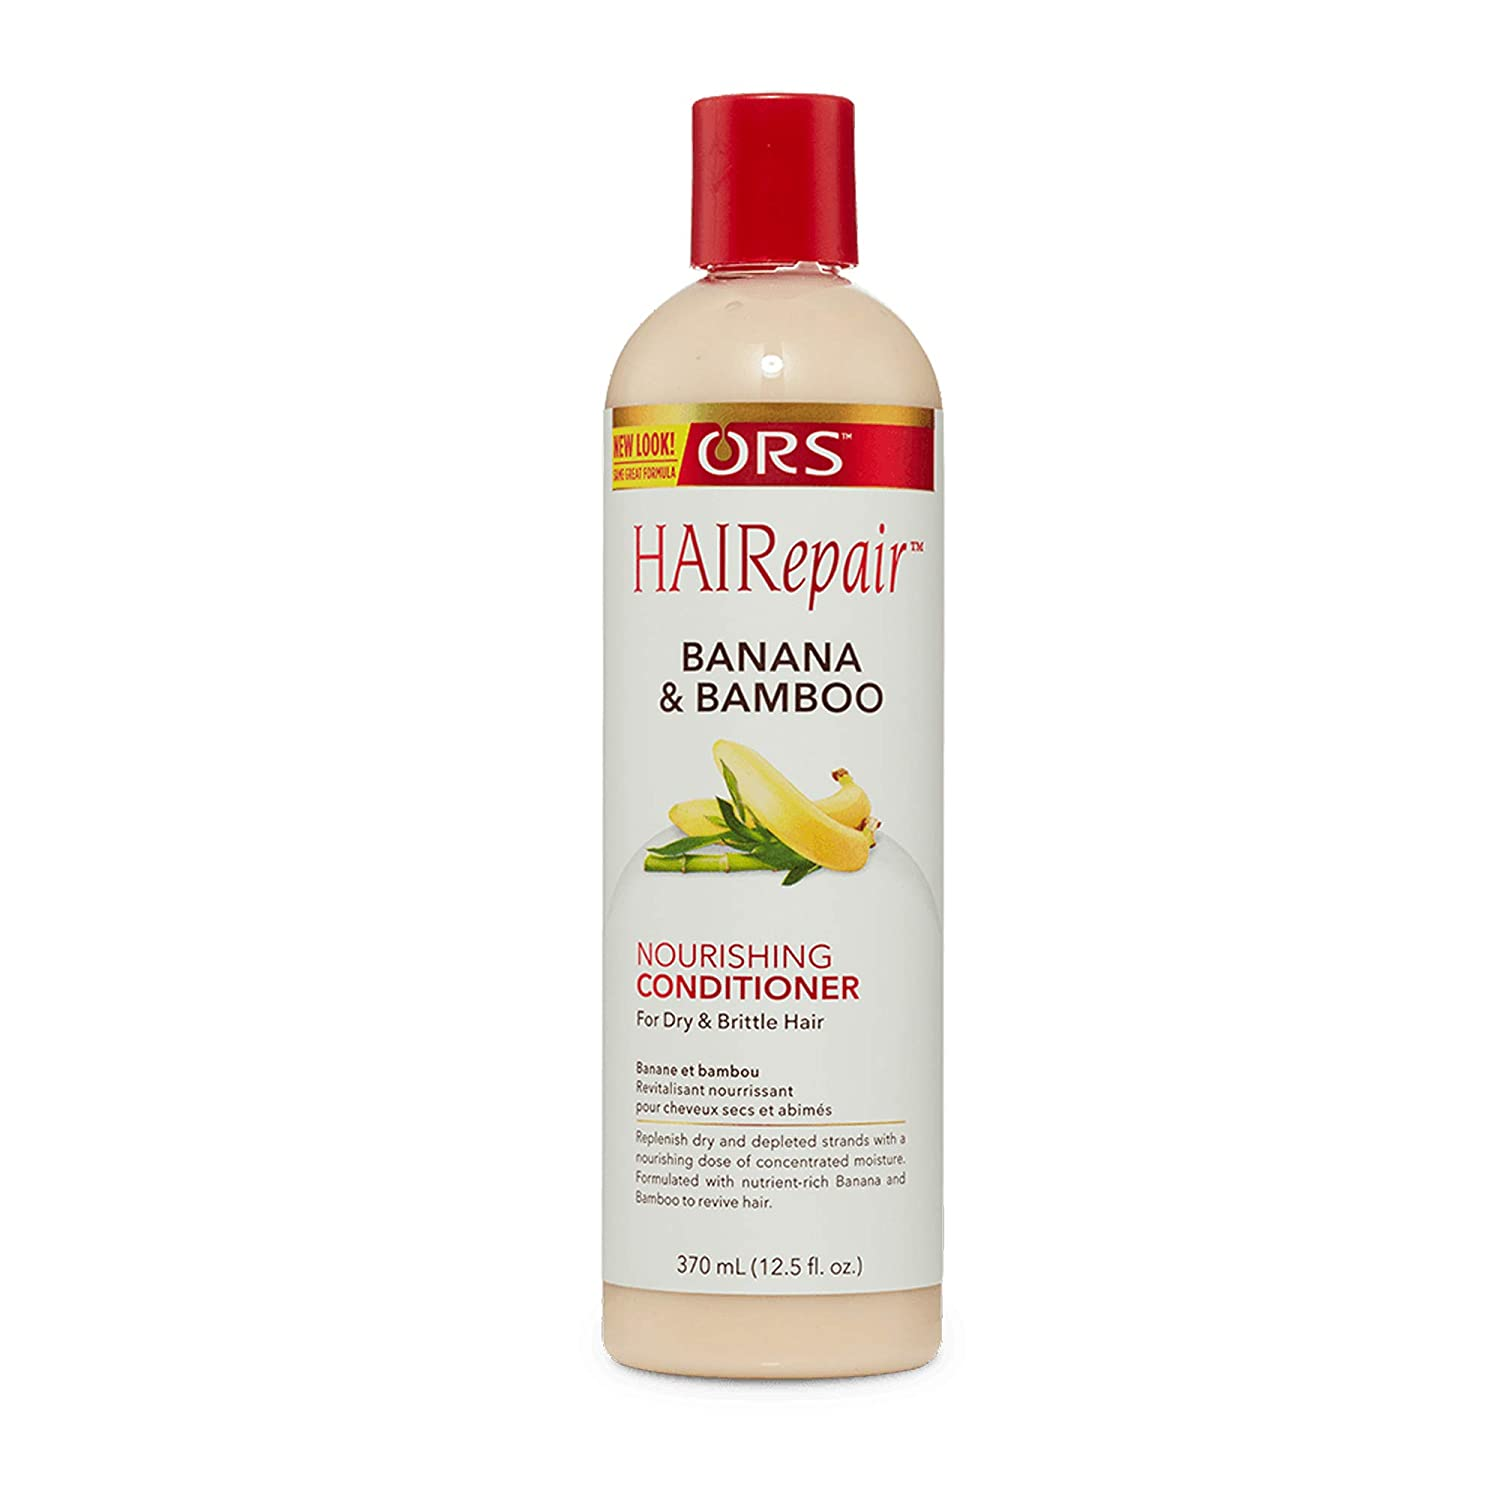 ORS Classic HAIRepair Banana and Bamboo for Fort Worth Mall a Dry Conditioner Nourishing